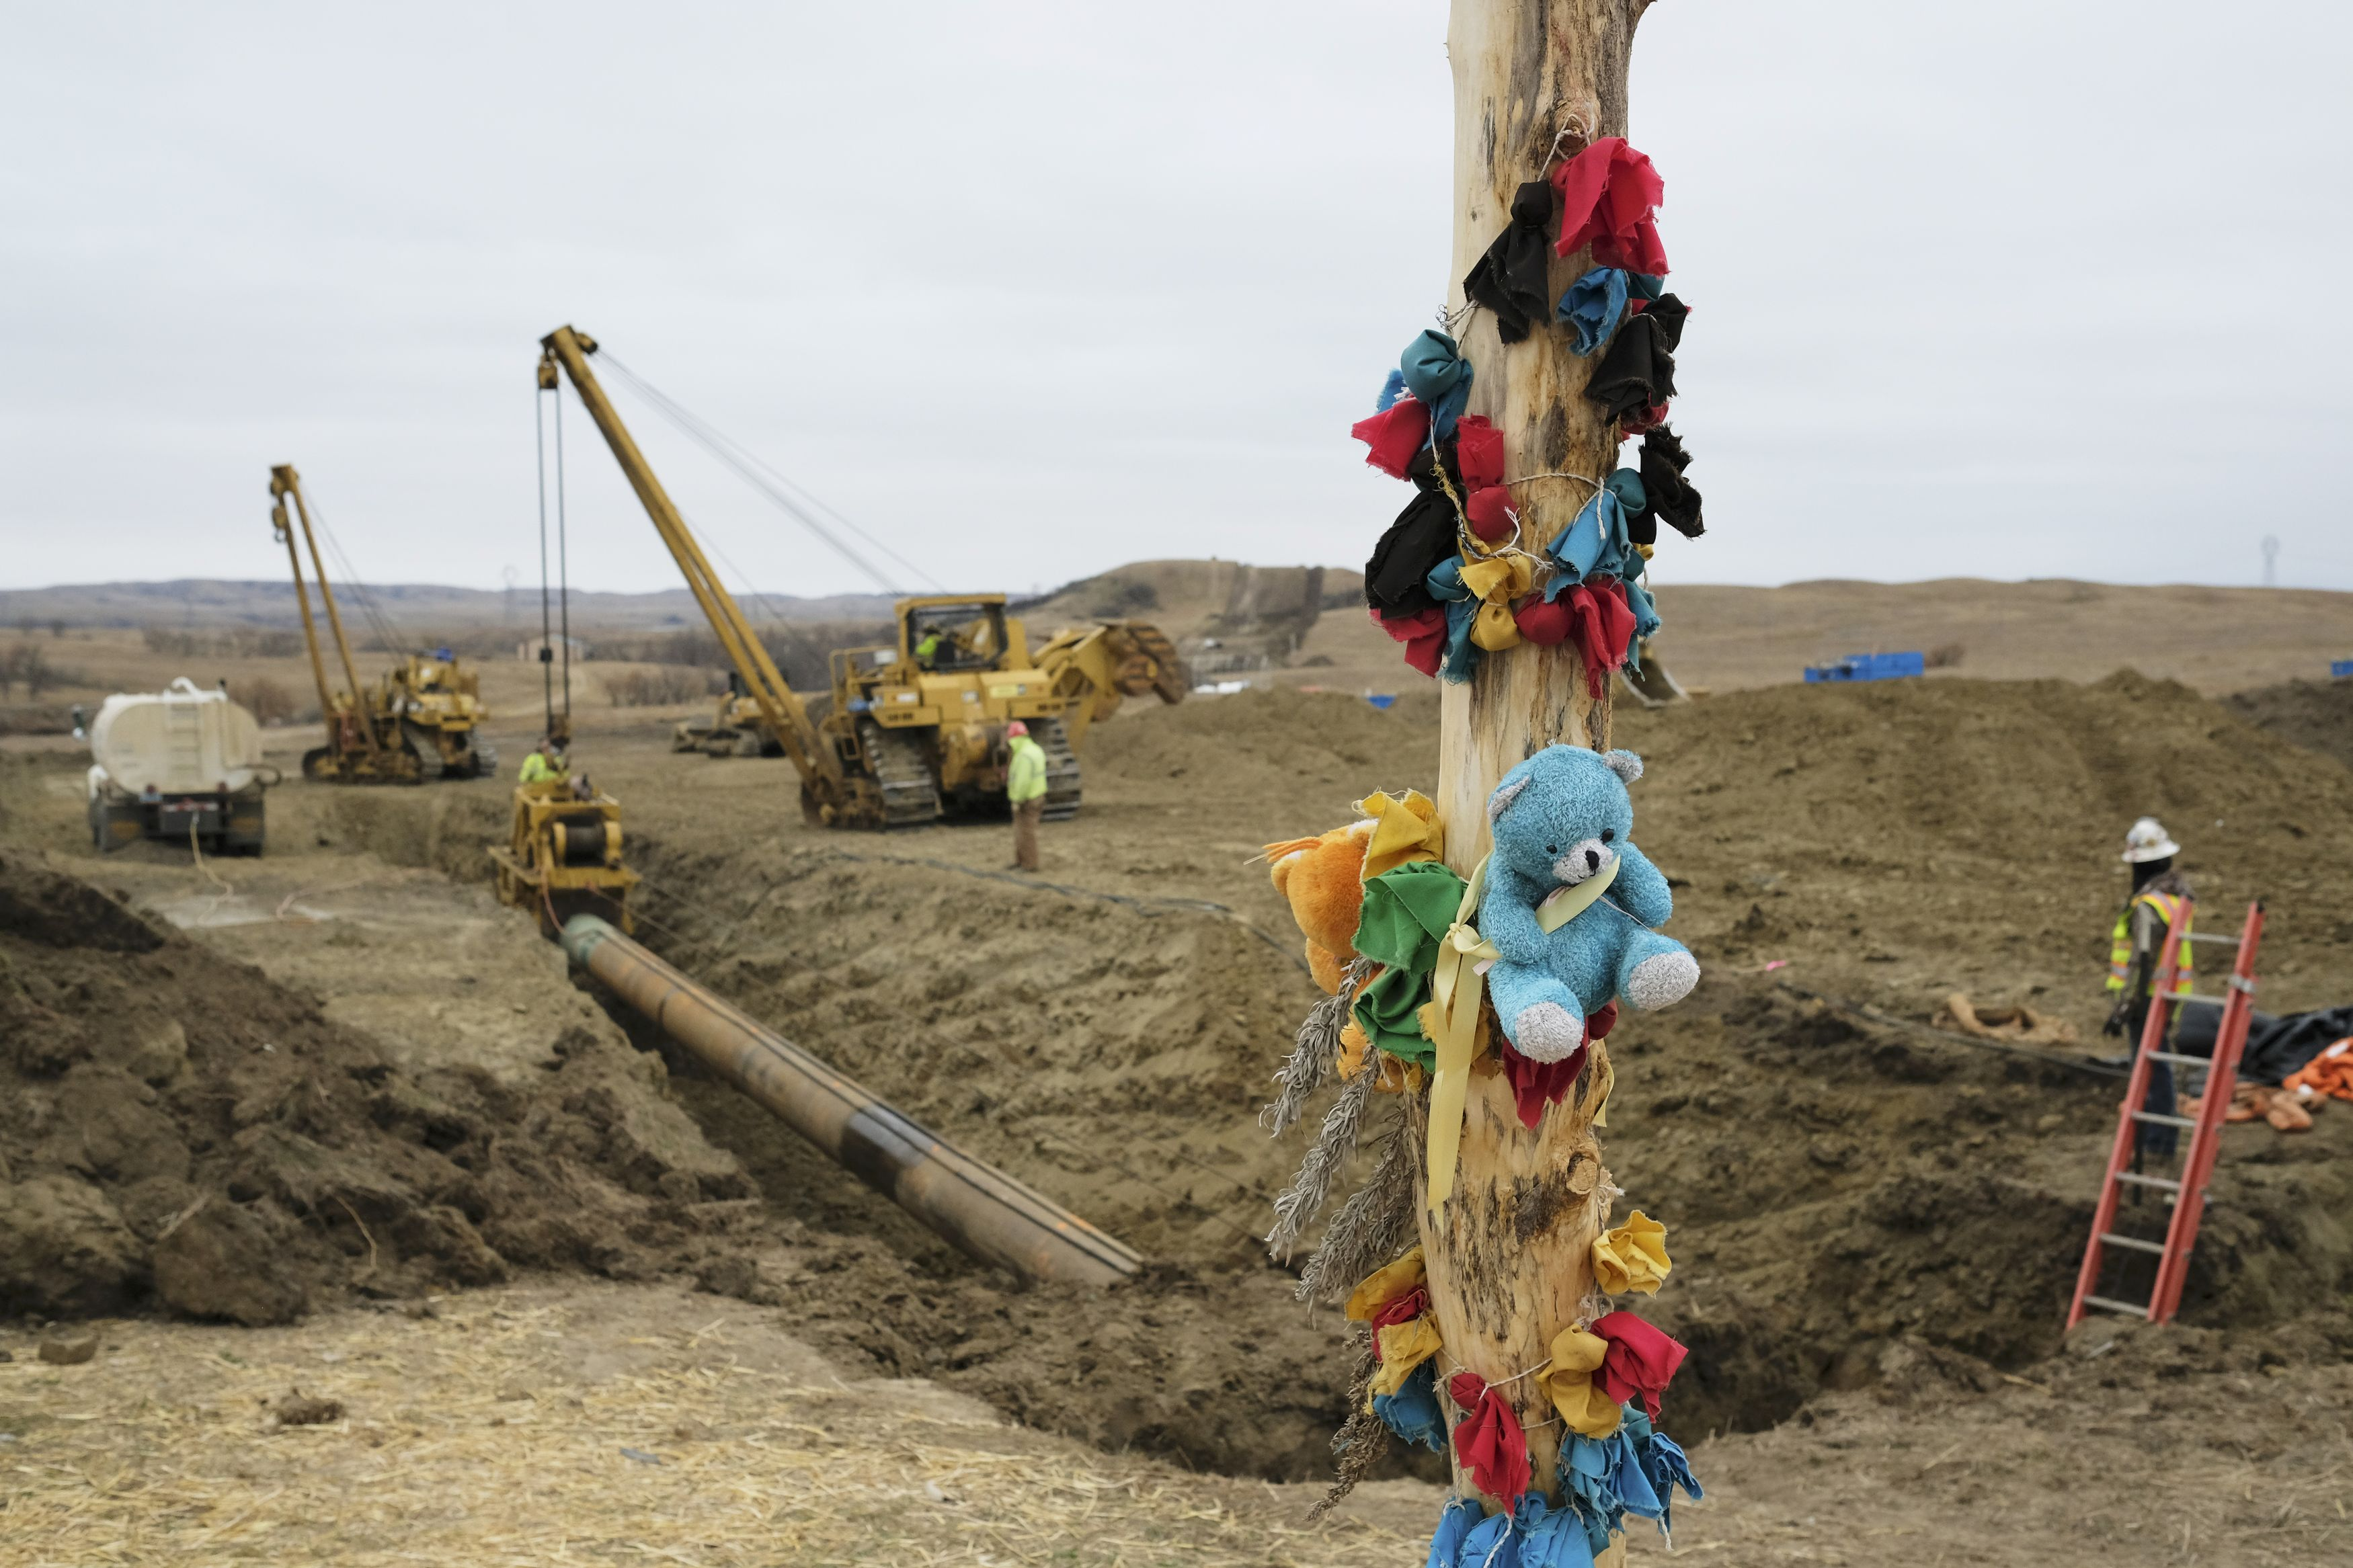 A log adorned with colorful decorations remains at a Dakota Access Pipeline protest encampment as construction work continues on the pipeline near the town of Cannon Ball, North Dakota, U.S.,